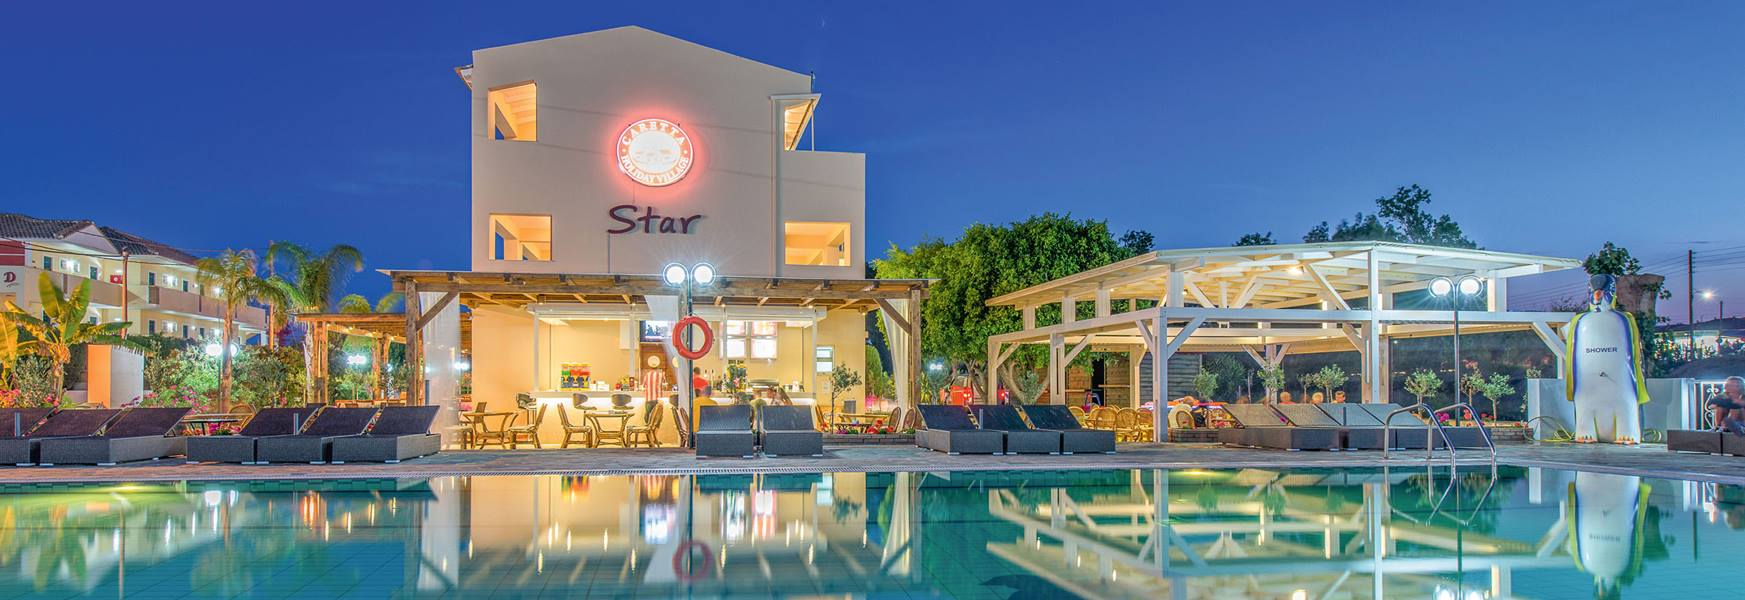 Hotel Caretta Star